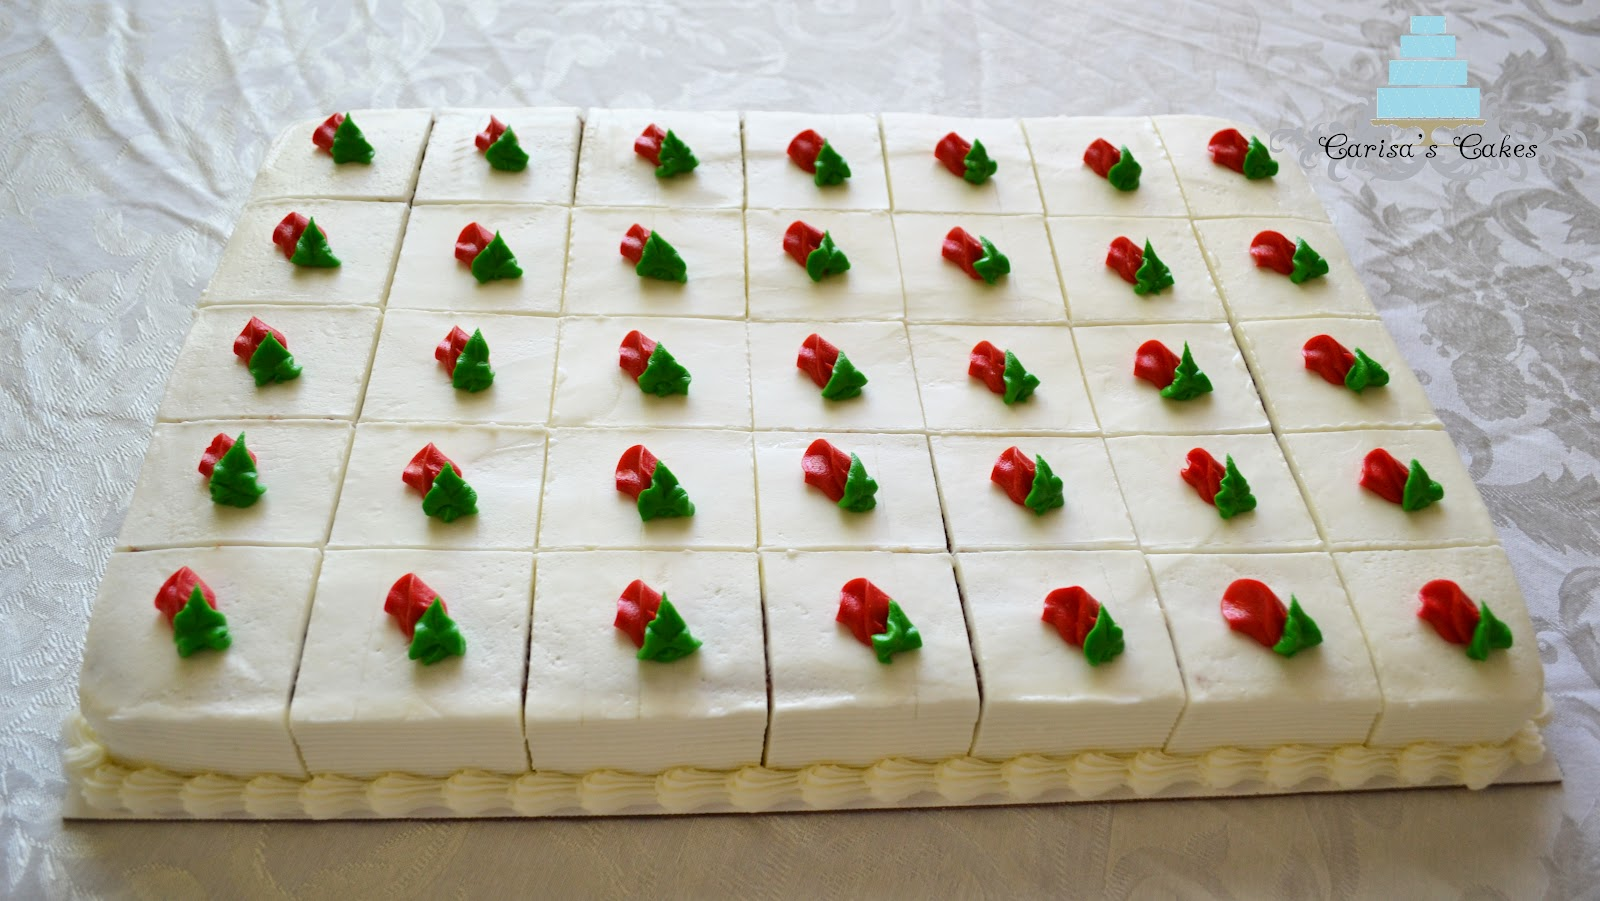 10 6 Rounds White Cake With Buttercream Icing Two Half Sheet Cakes Chocolate And Carrot Pre Sliced Piped Rosebuds